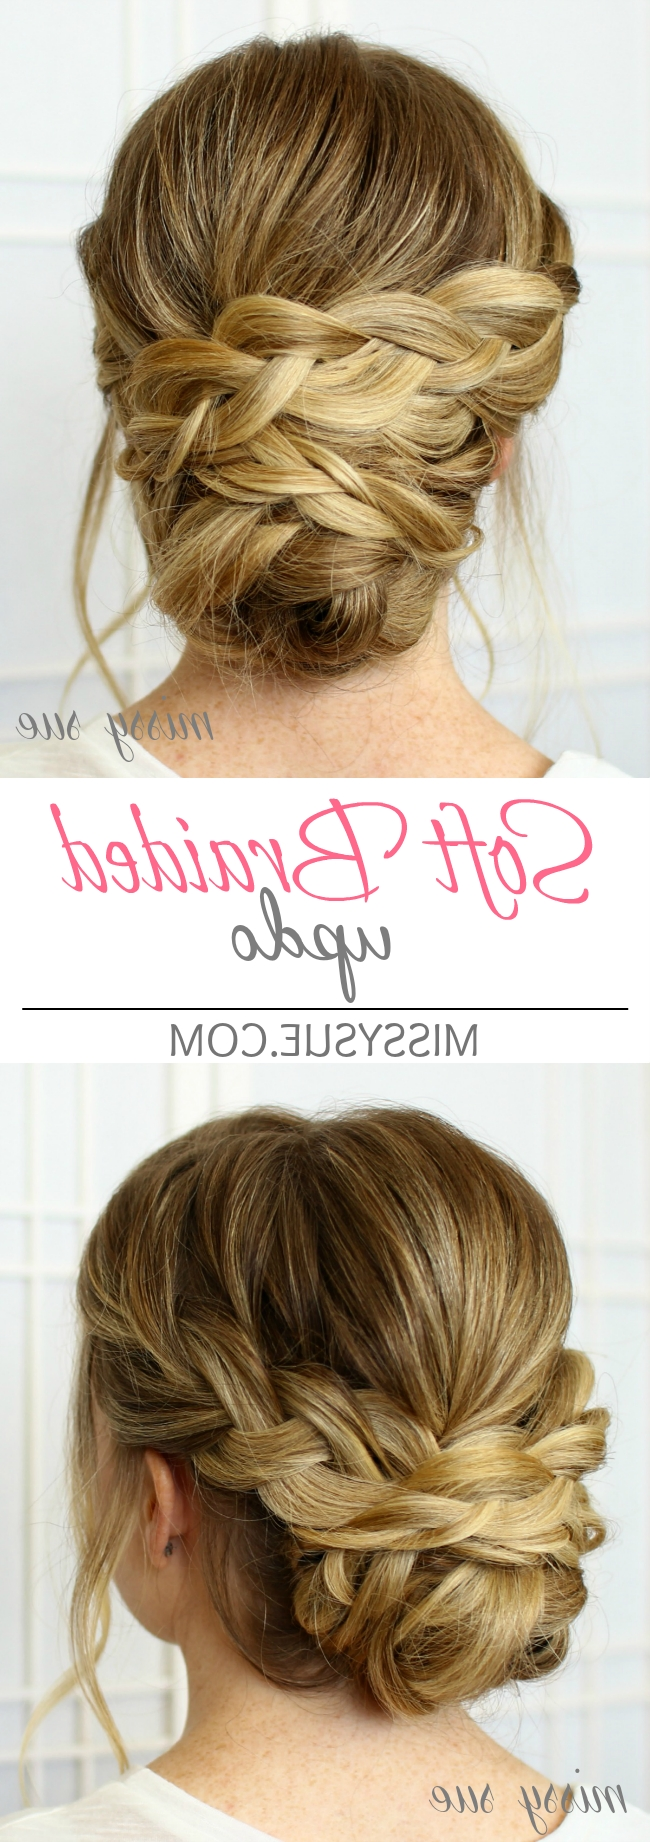 Soft Braided Updo Regarding Widely Used Braided Evening Hairstyles (View 8 of 15)